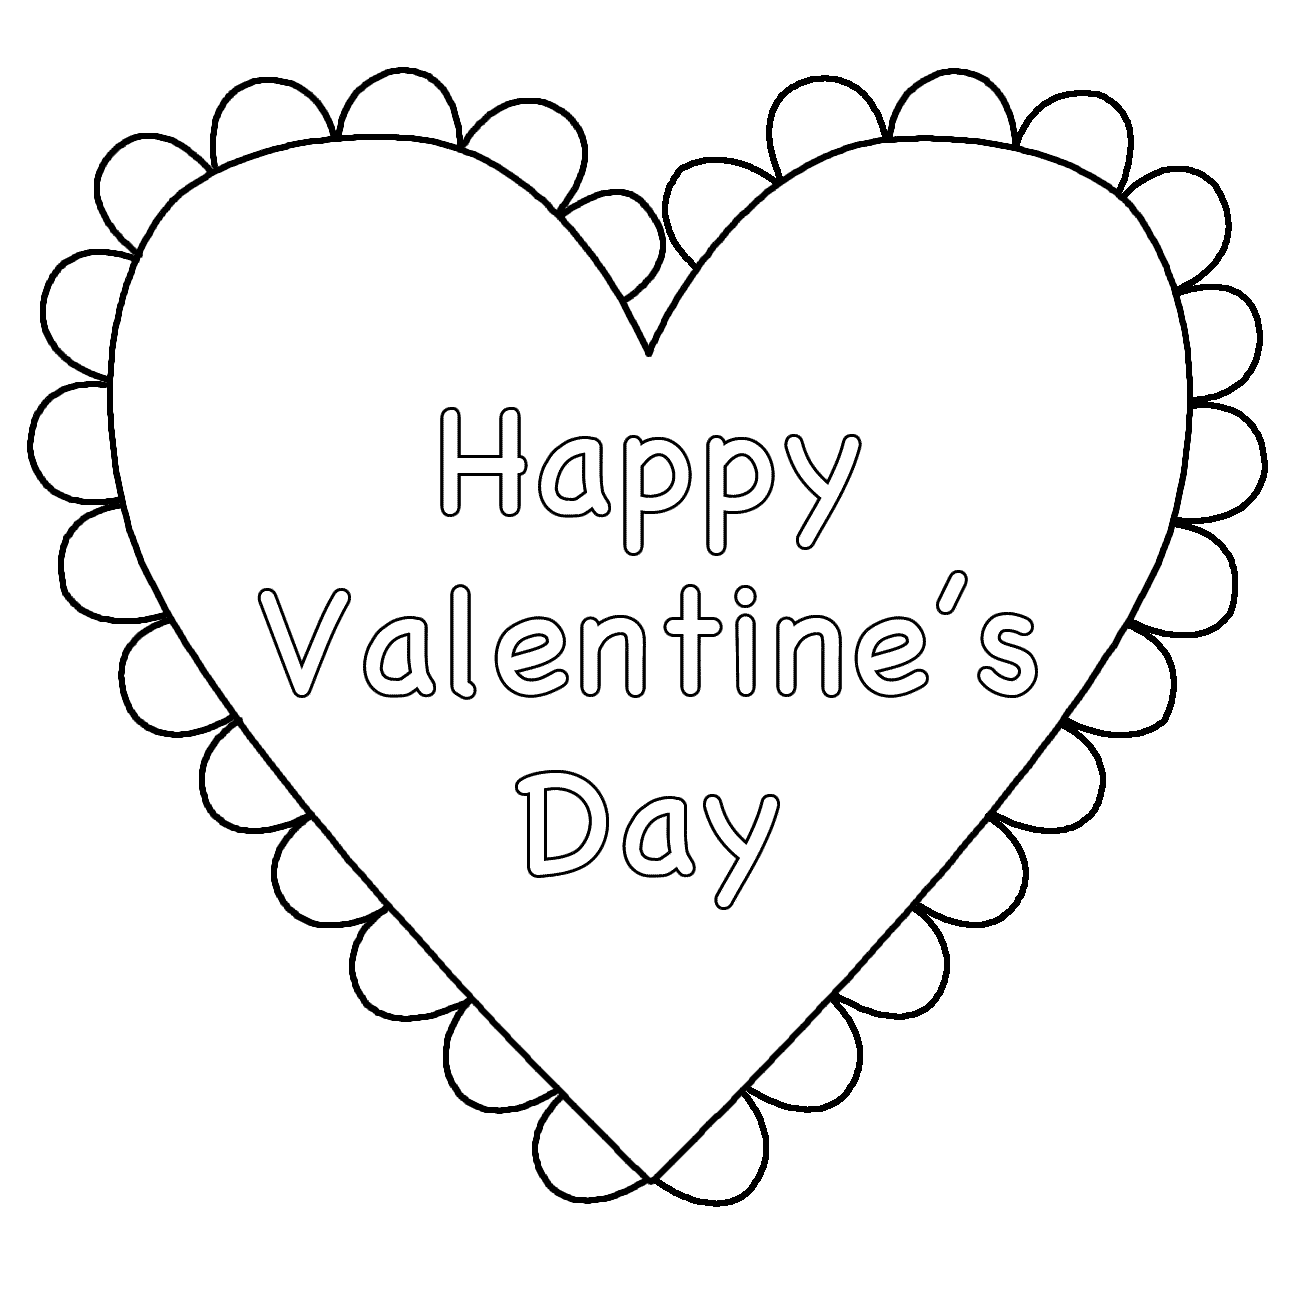 Valentines day heart coloring page coloring home for Valentines days coloring pages